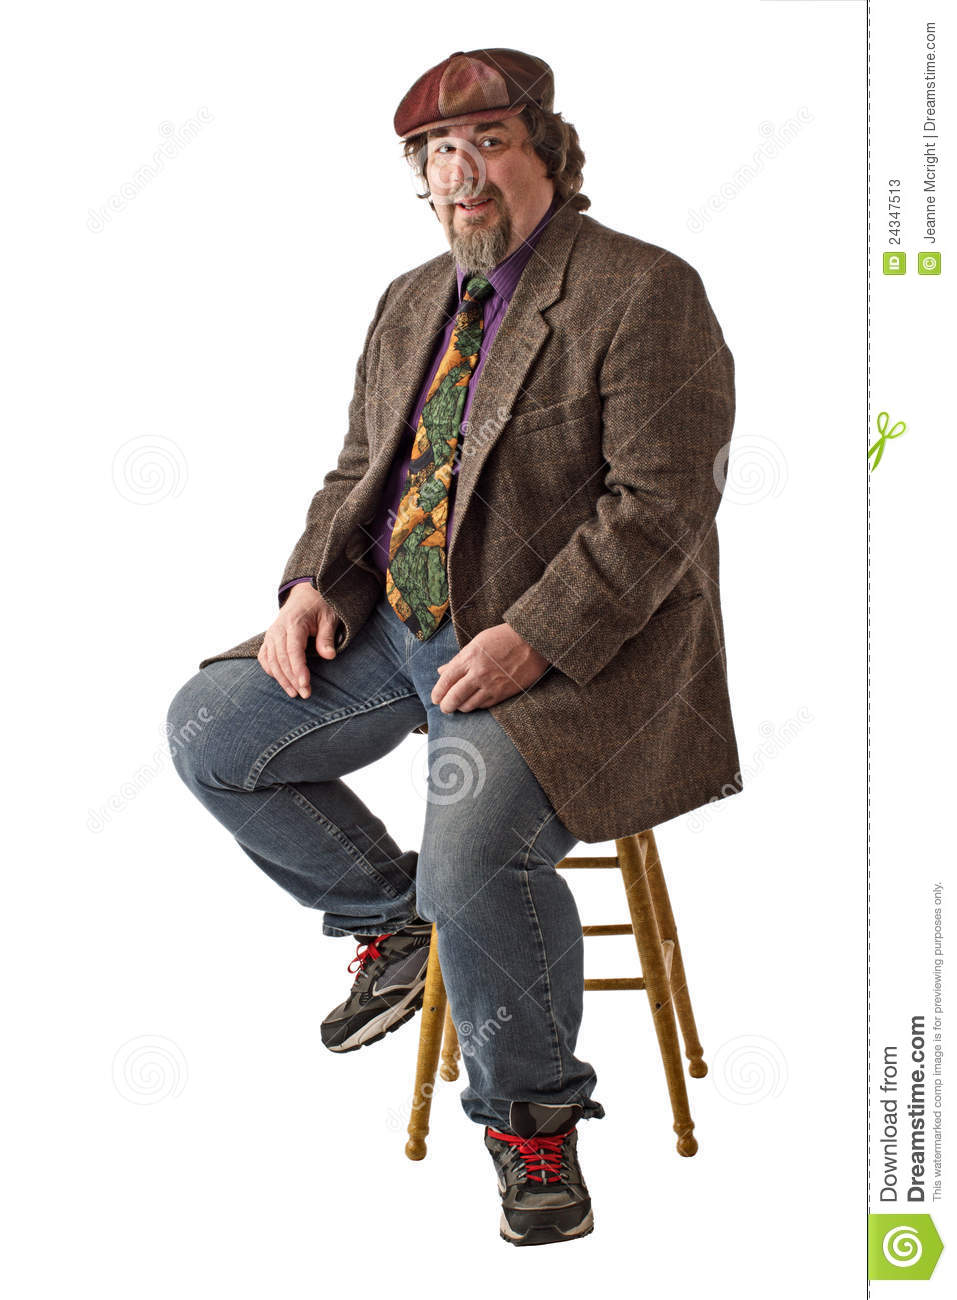 Smiling large man sits in relaxed pose